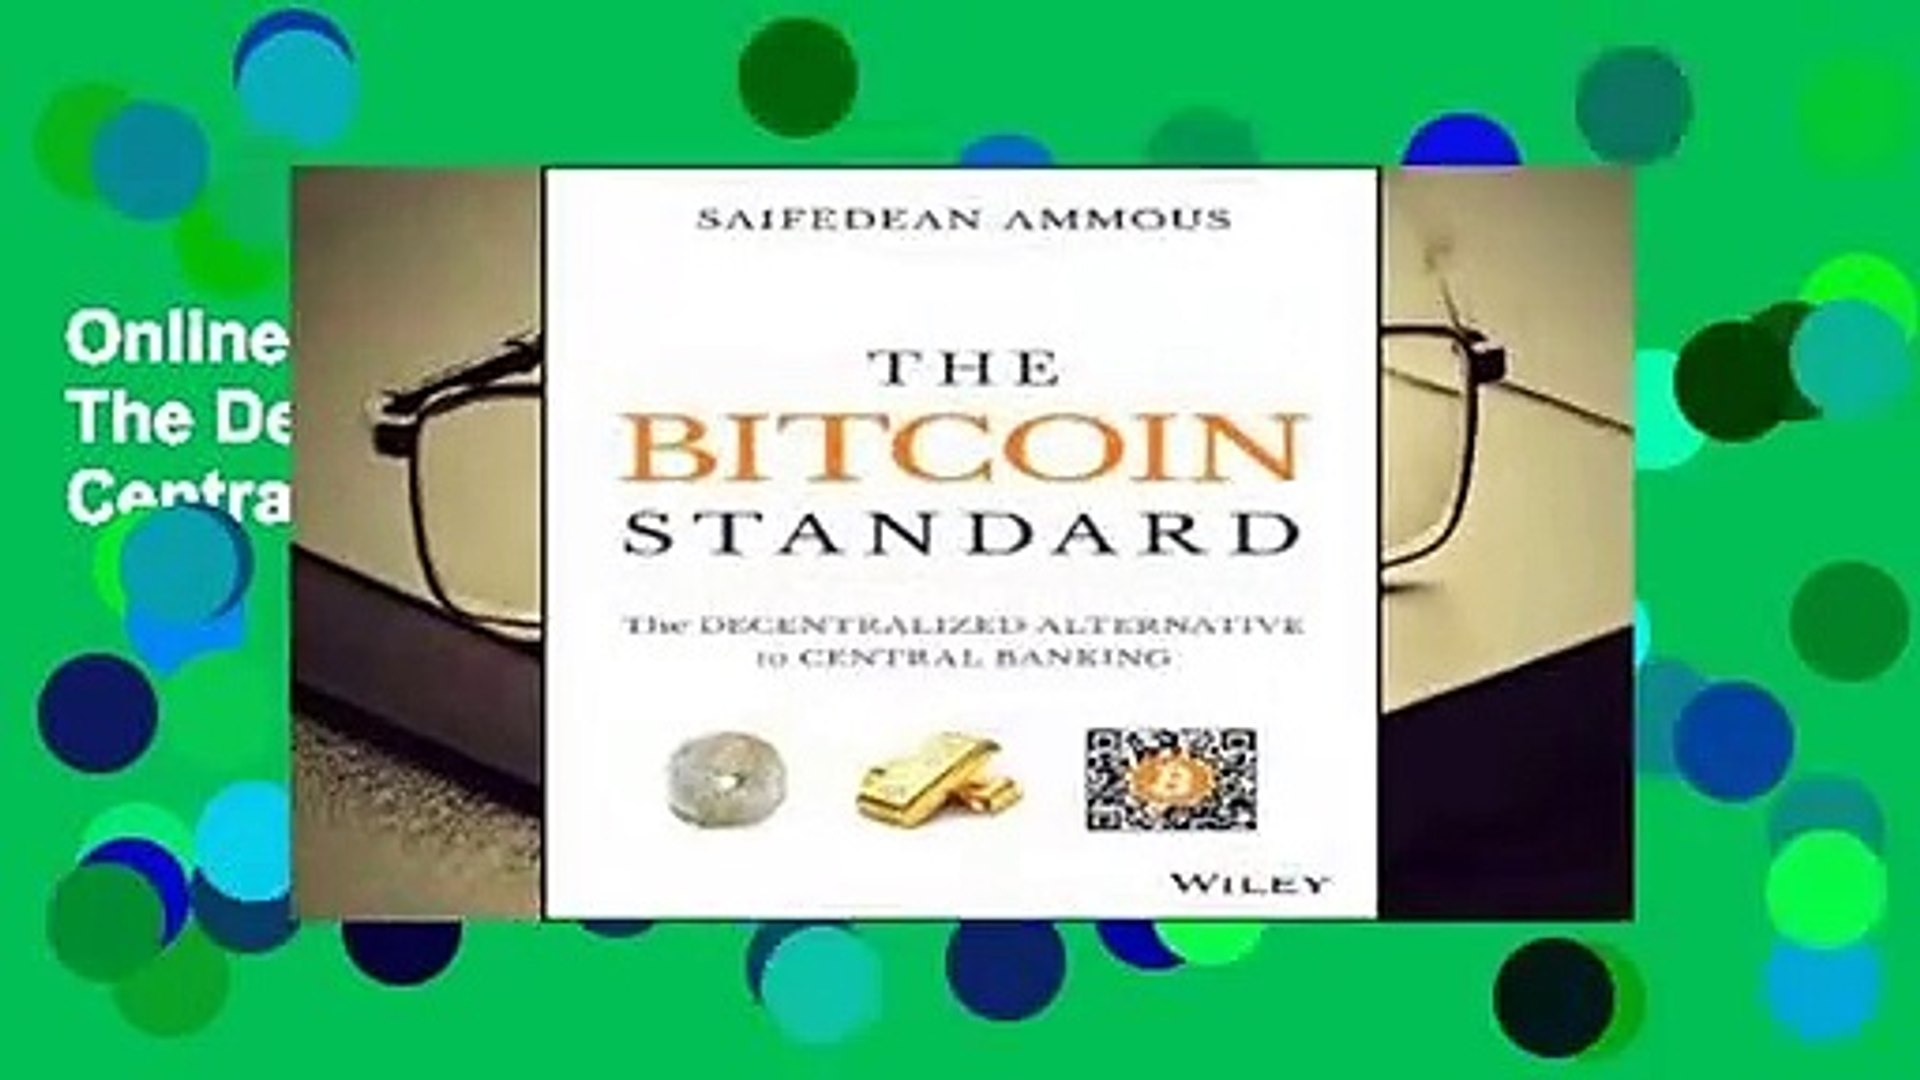 Online The Bitcoin Standard: The Decentralized Alternative to Central Banking  For Online